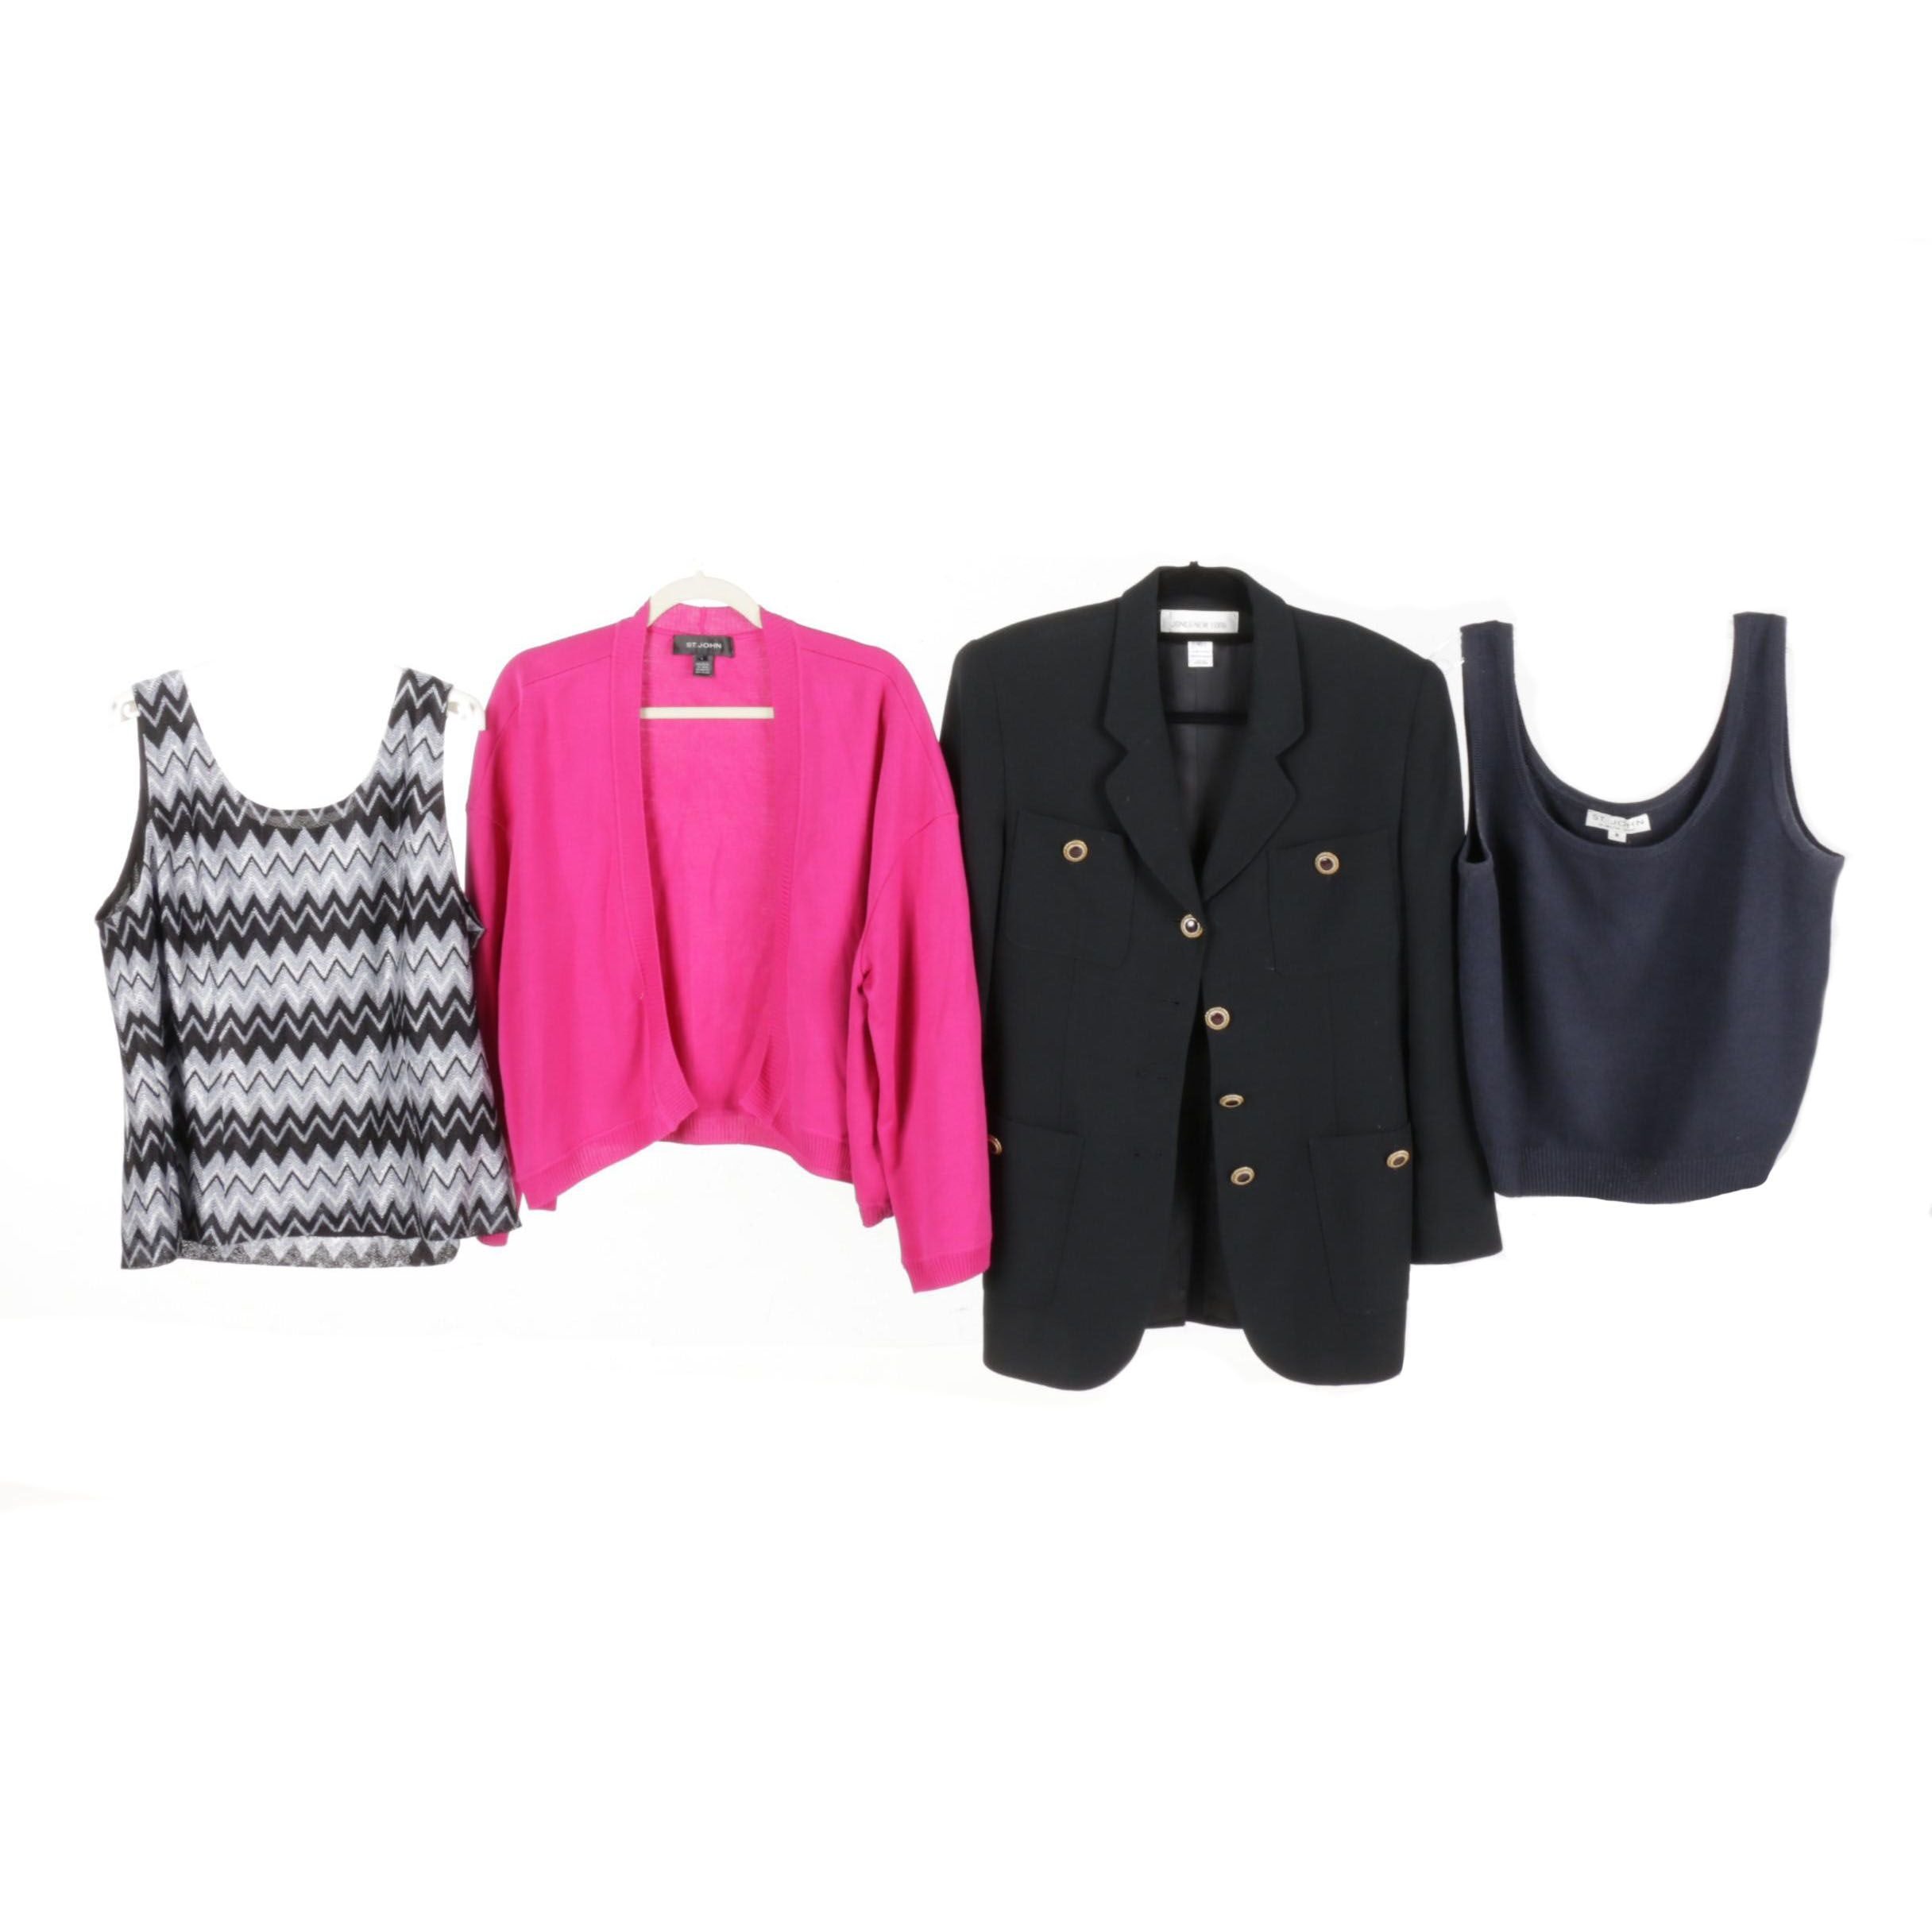 St. John Brand and Jones New York Tops and Outerwear